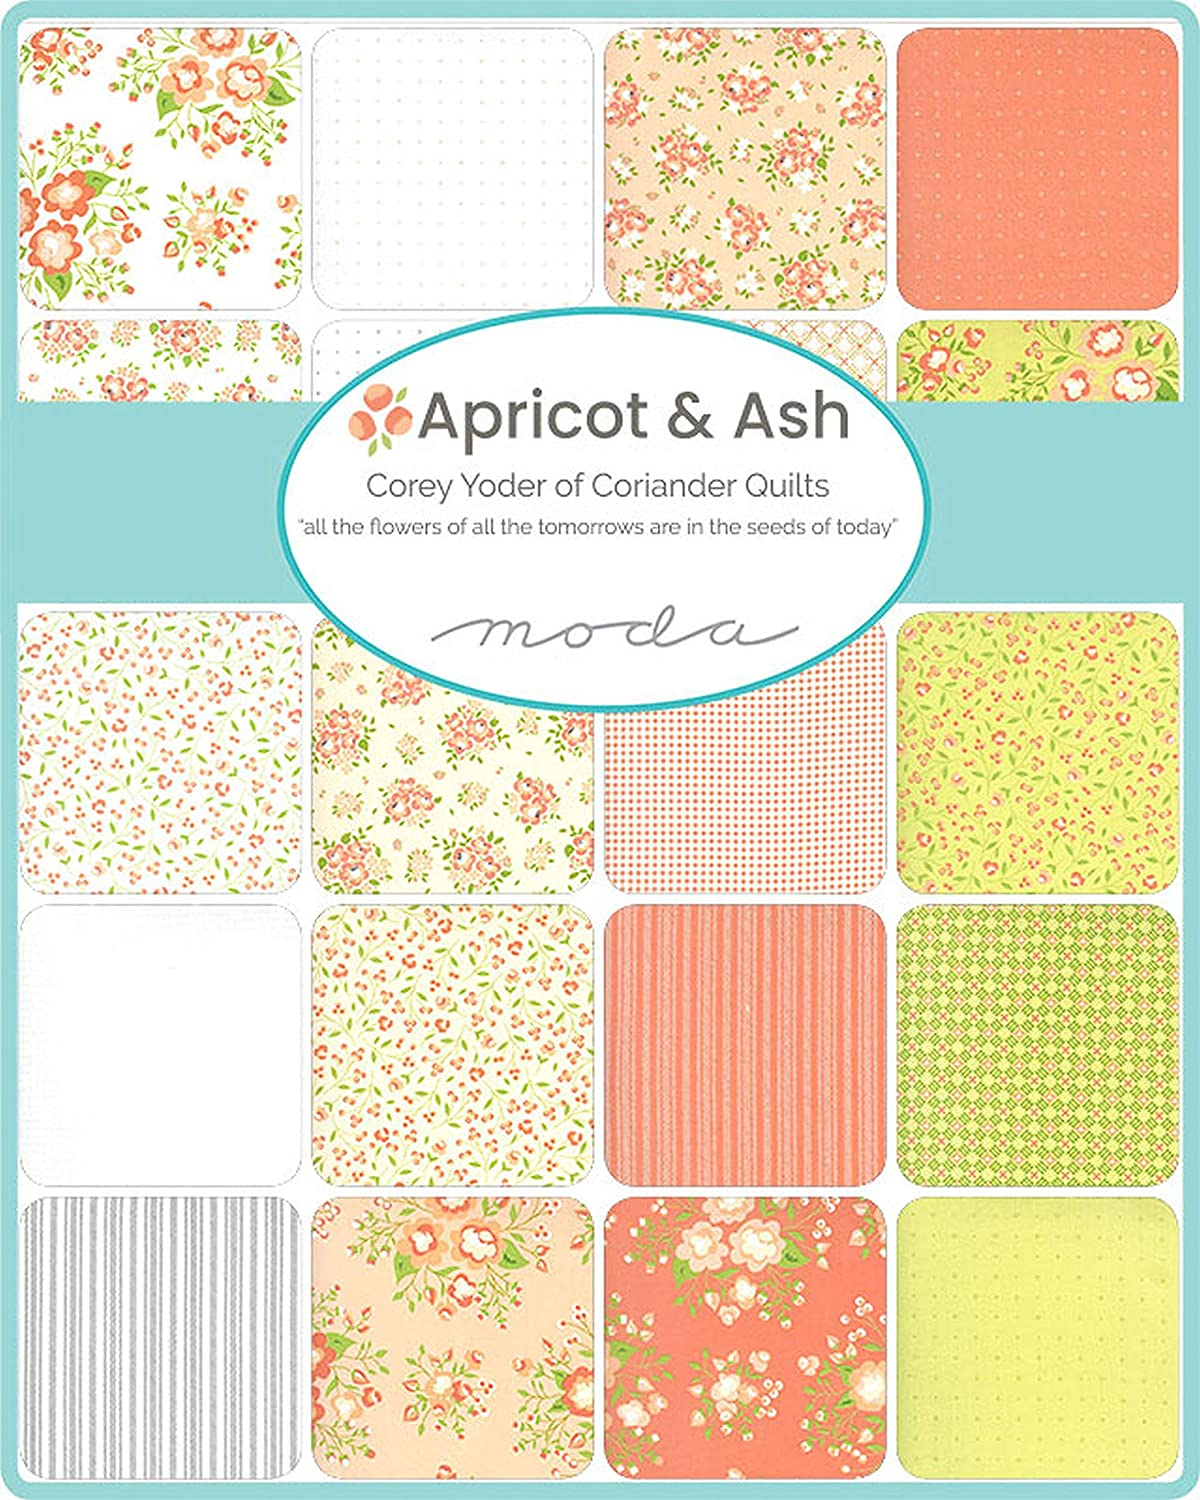 Apricot and Ash Charm Pack by Corey Yoder; 42-5 Inch Precut Fabric Quilt Squares